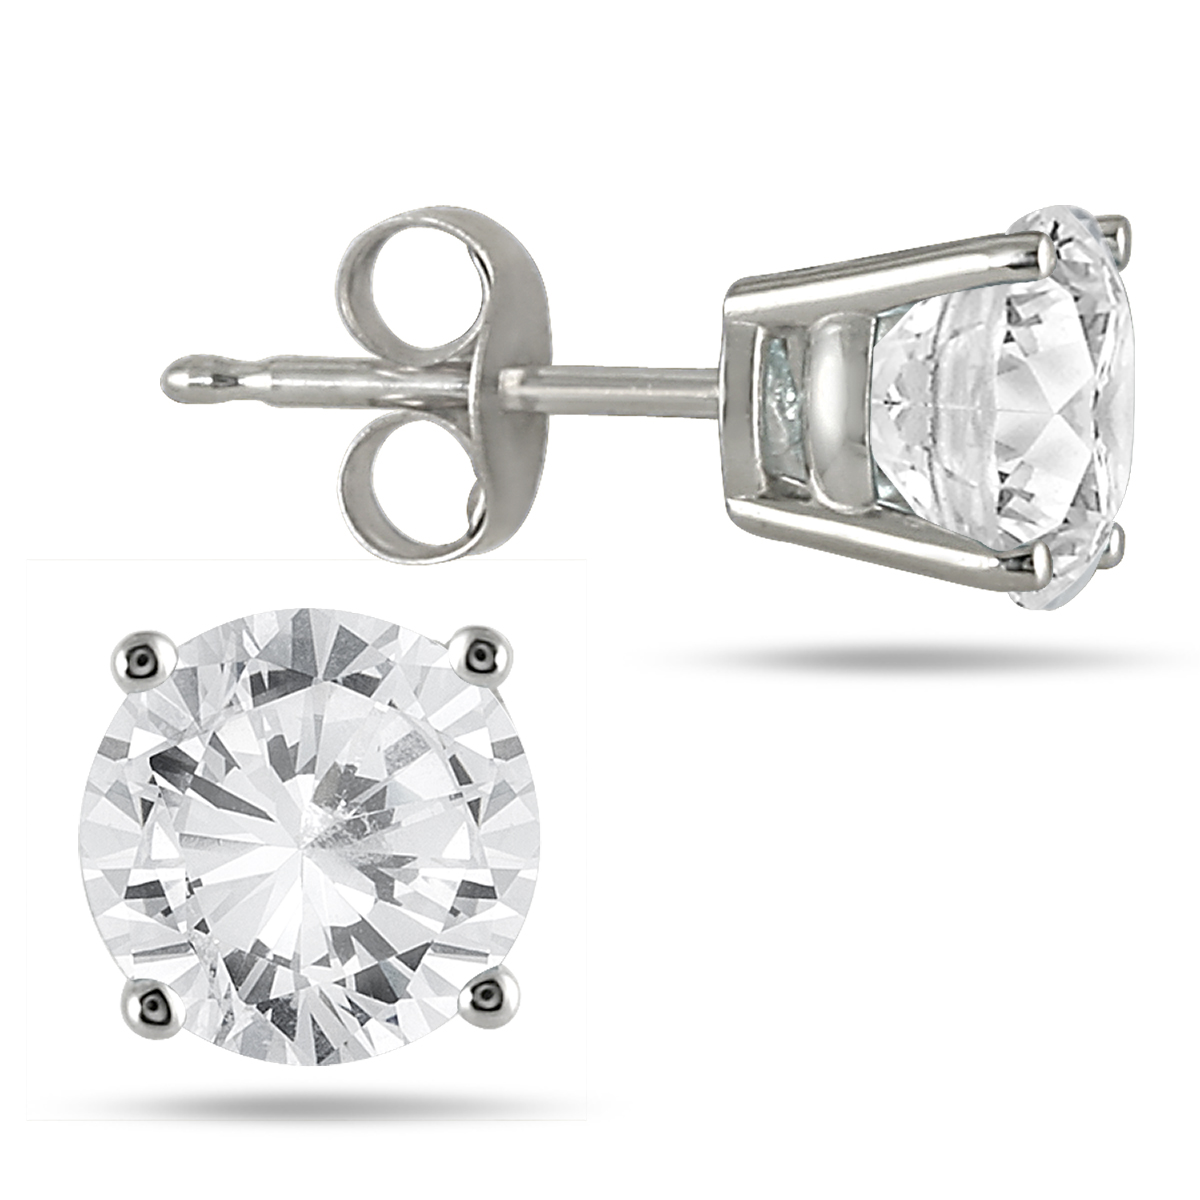 3/4 Carat Round Diamond Solitaire Earrings in 14K White Gold (H-I Color)